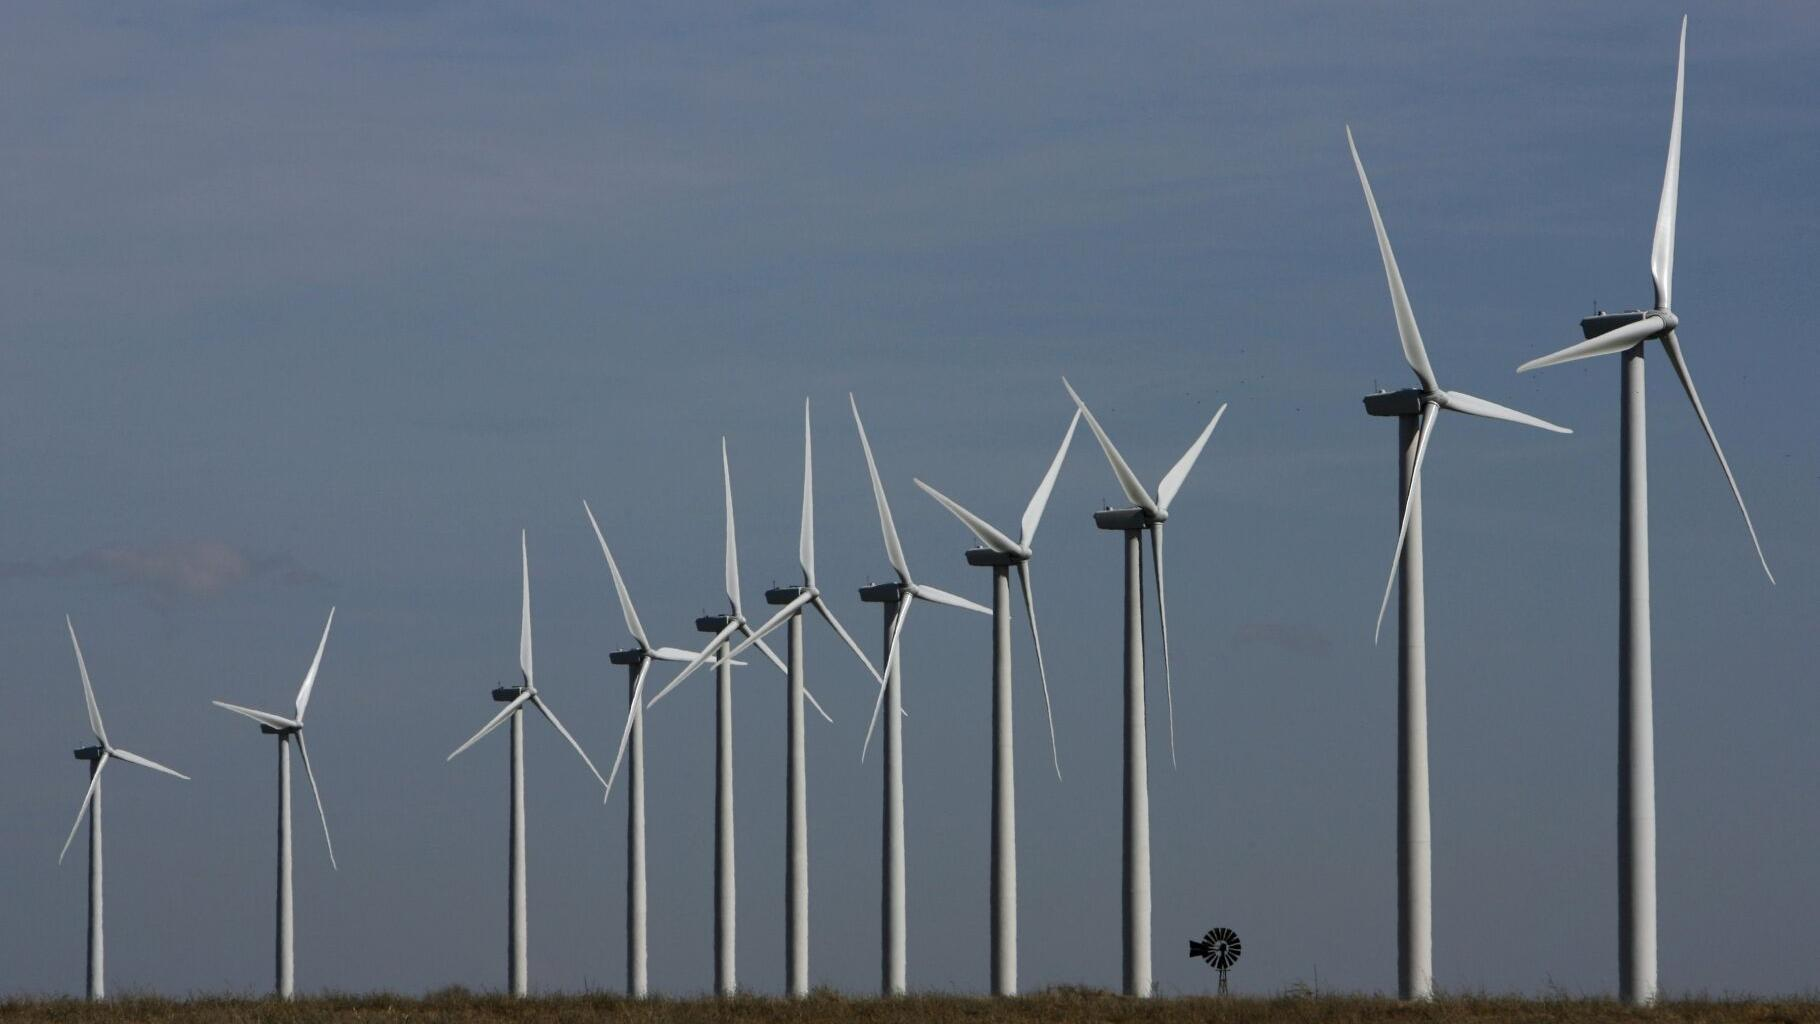 Opinion: Oklahoma can win big by embracing the Green Energy revolution